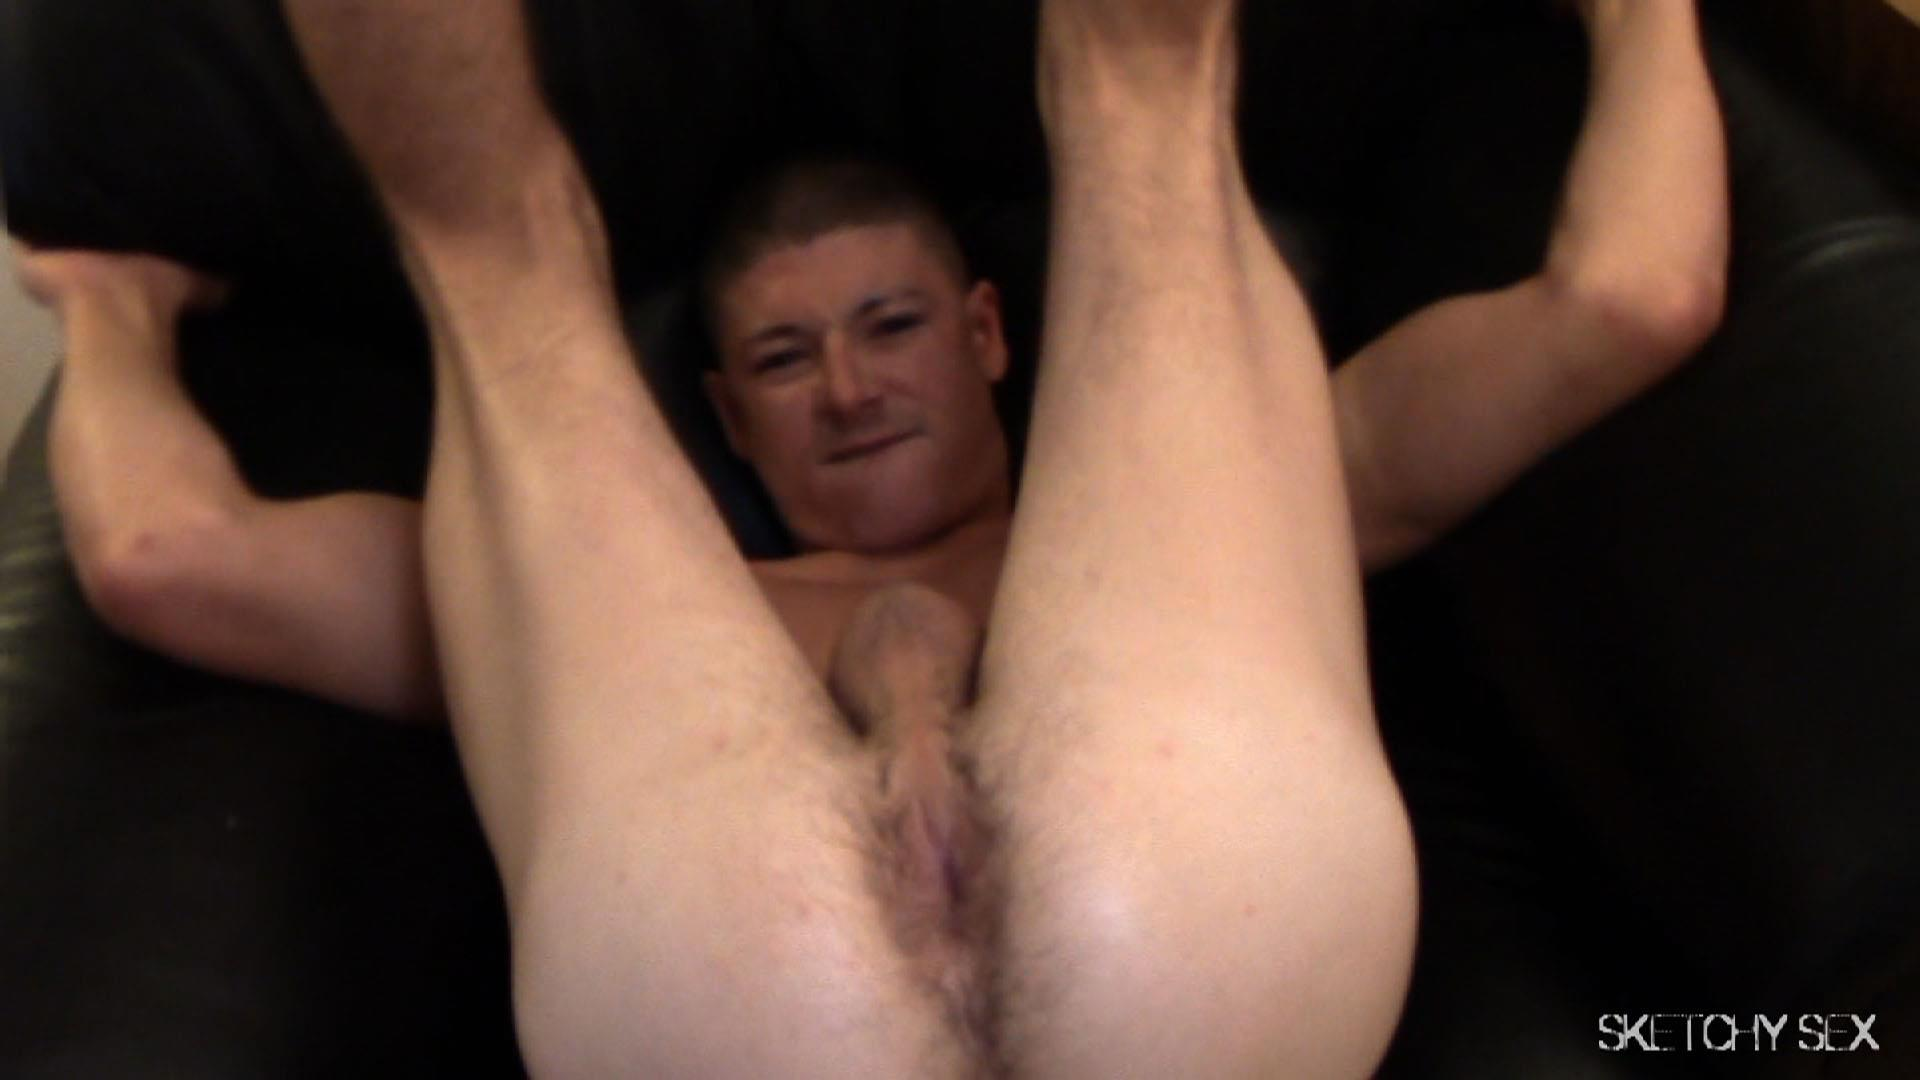 "Sketchy Sex Nate Getting Fucked Bareback By A 10 Inch Craigslist Cock Amateur Gay Porn 03 Taking A 10"" Craigslist Cock Bareback While The Roommate Watches"